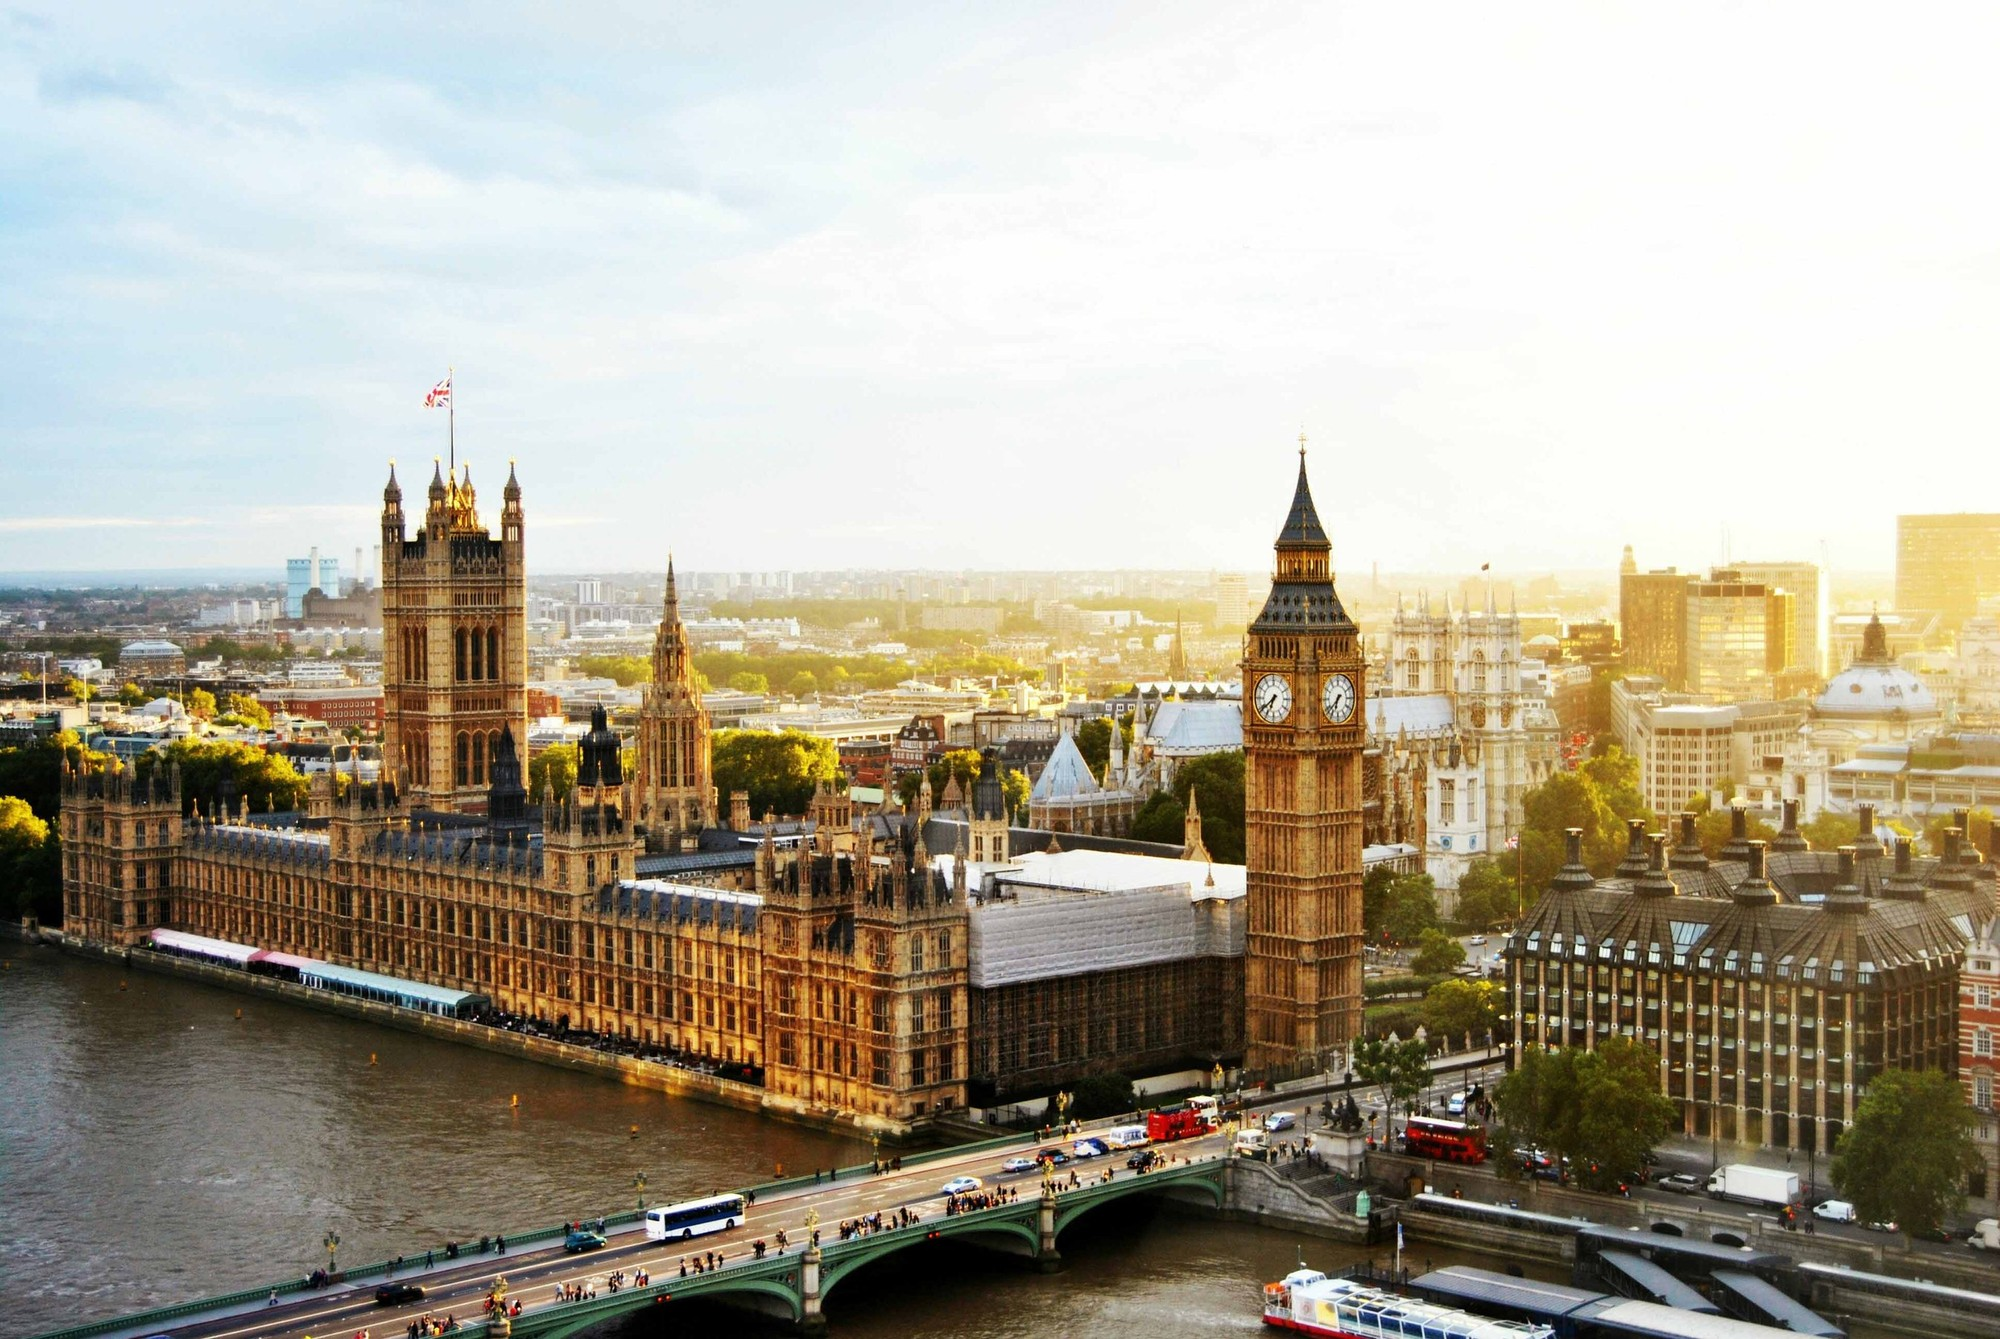 The Palace of Westminster rises above the River Thames with the London skyline in the background